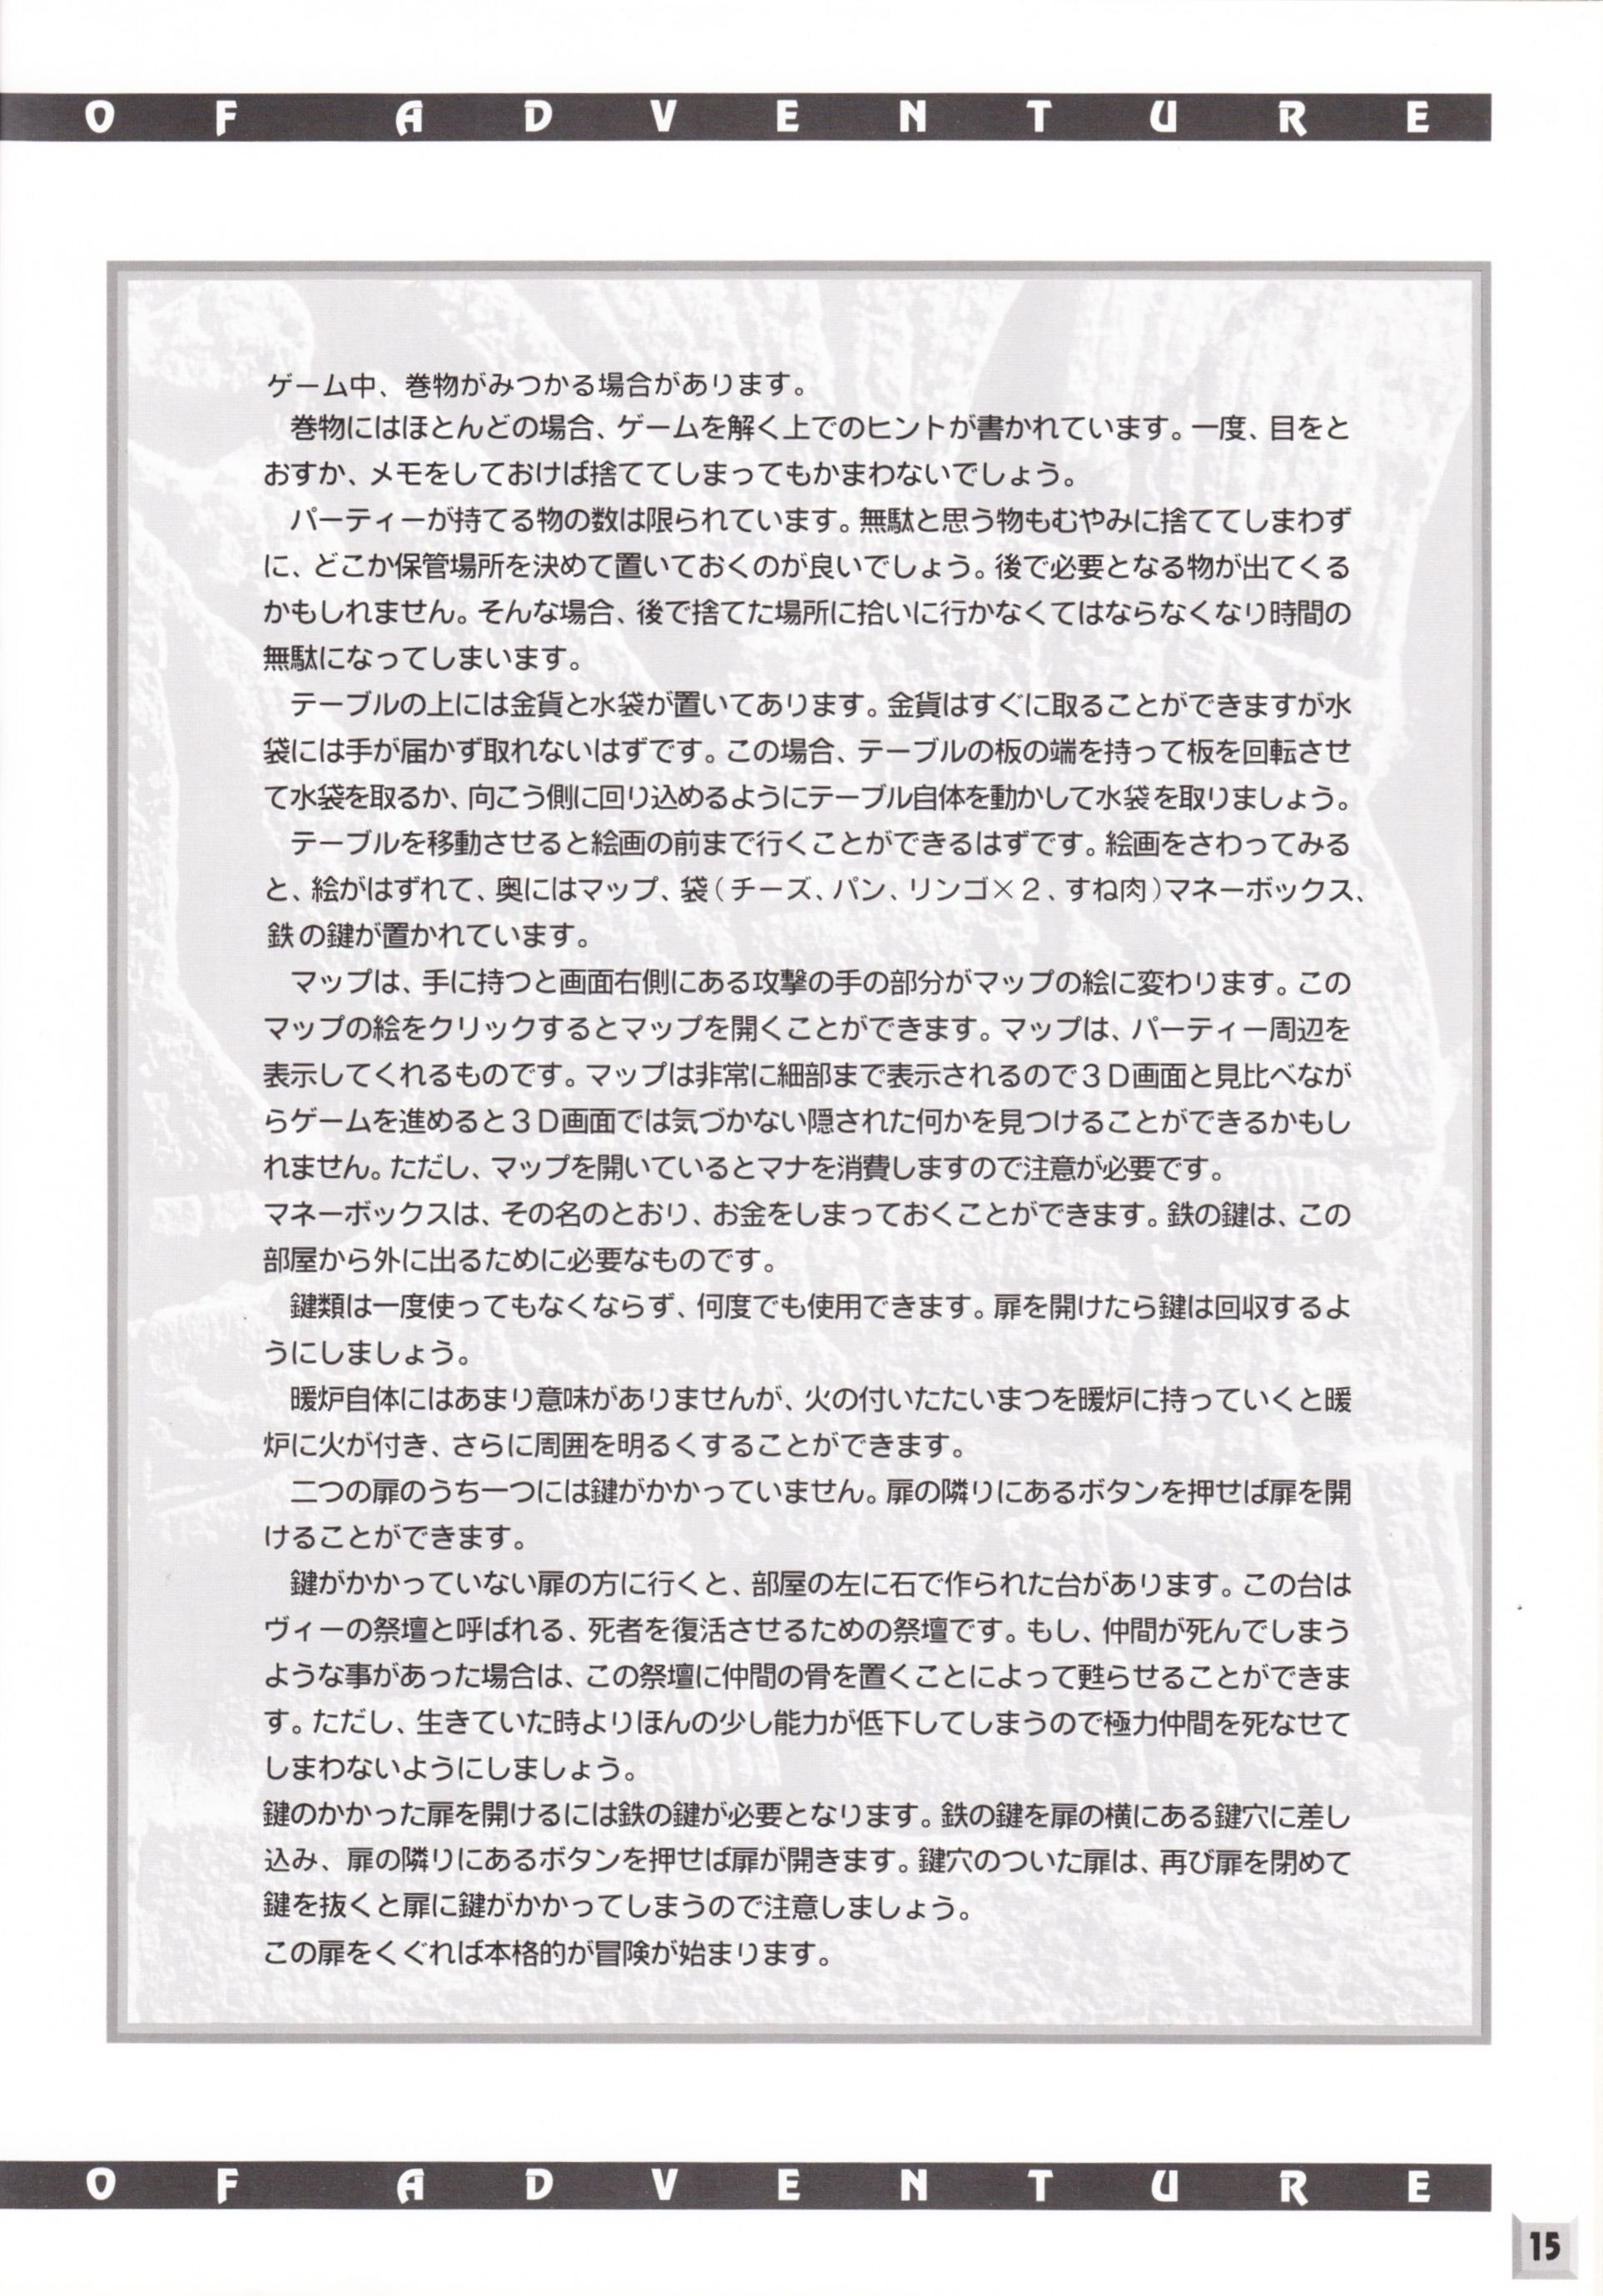 Game - Dungeon Master II - JP - PC-9801 - 3.5-inch - The Guidance Of Adventure - Page 017 - Scan